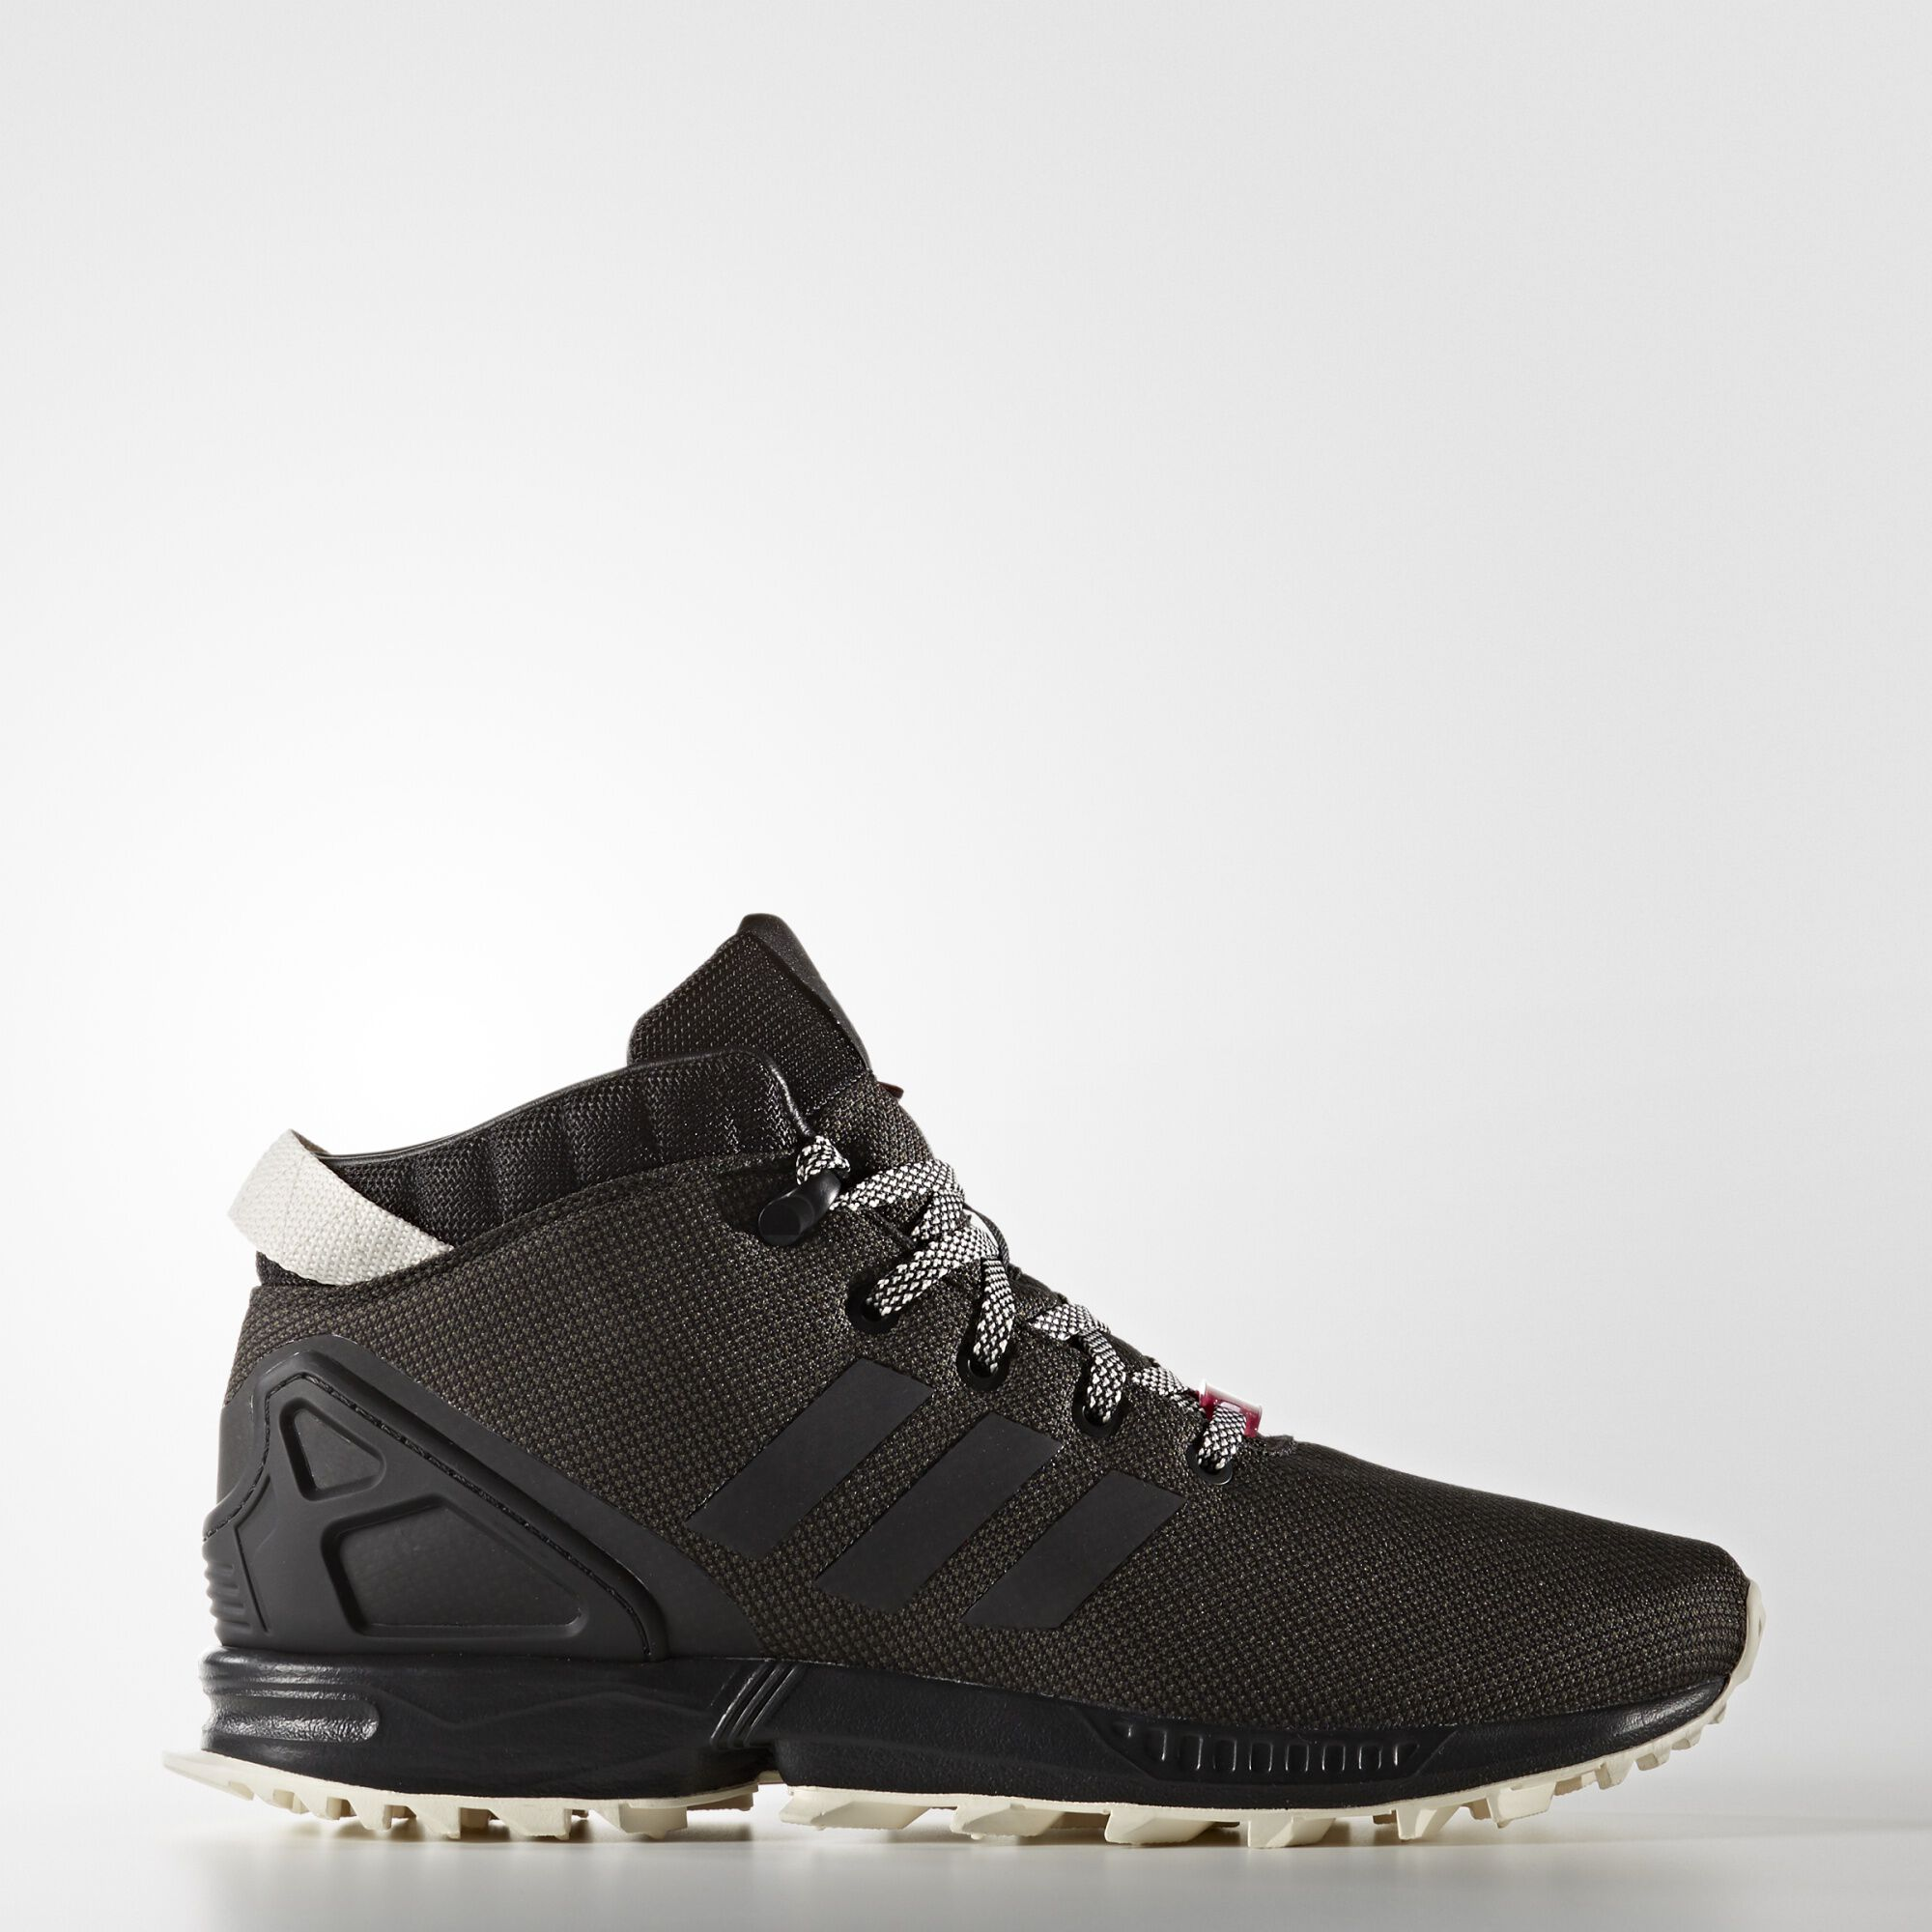 Adidas Zx Flux Black Metallic Copper Womens Trainers S79877